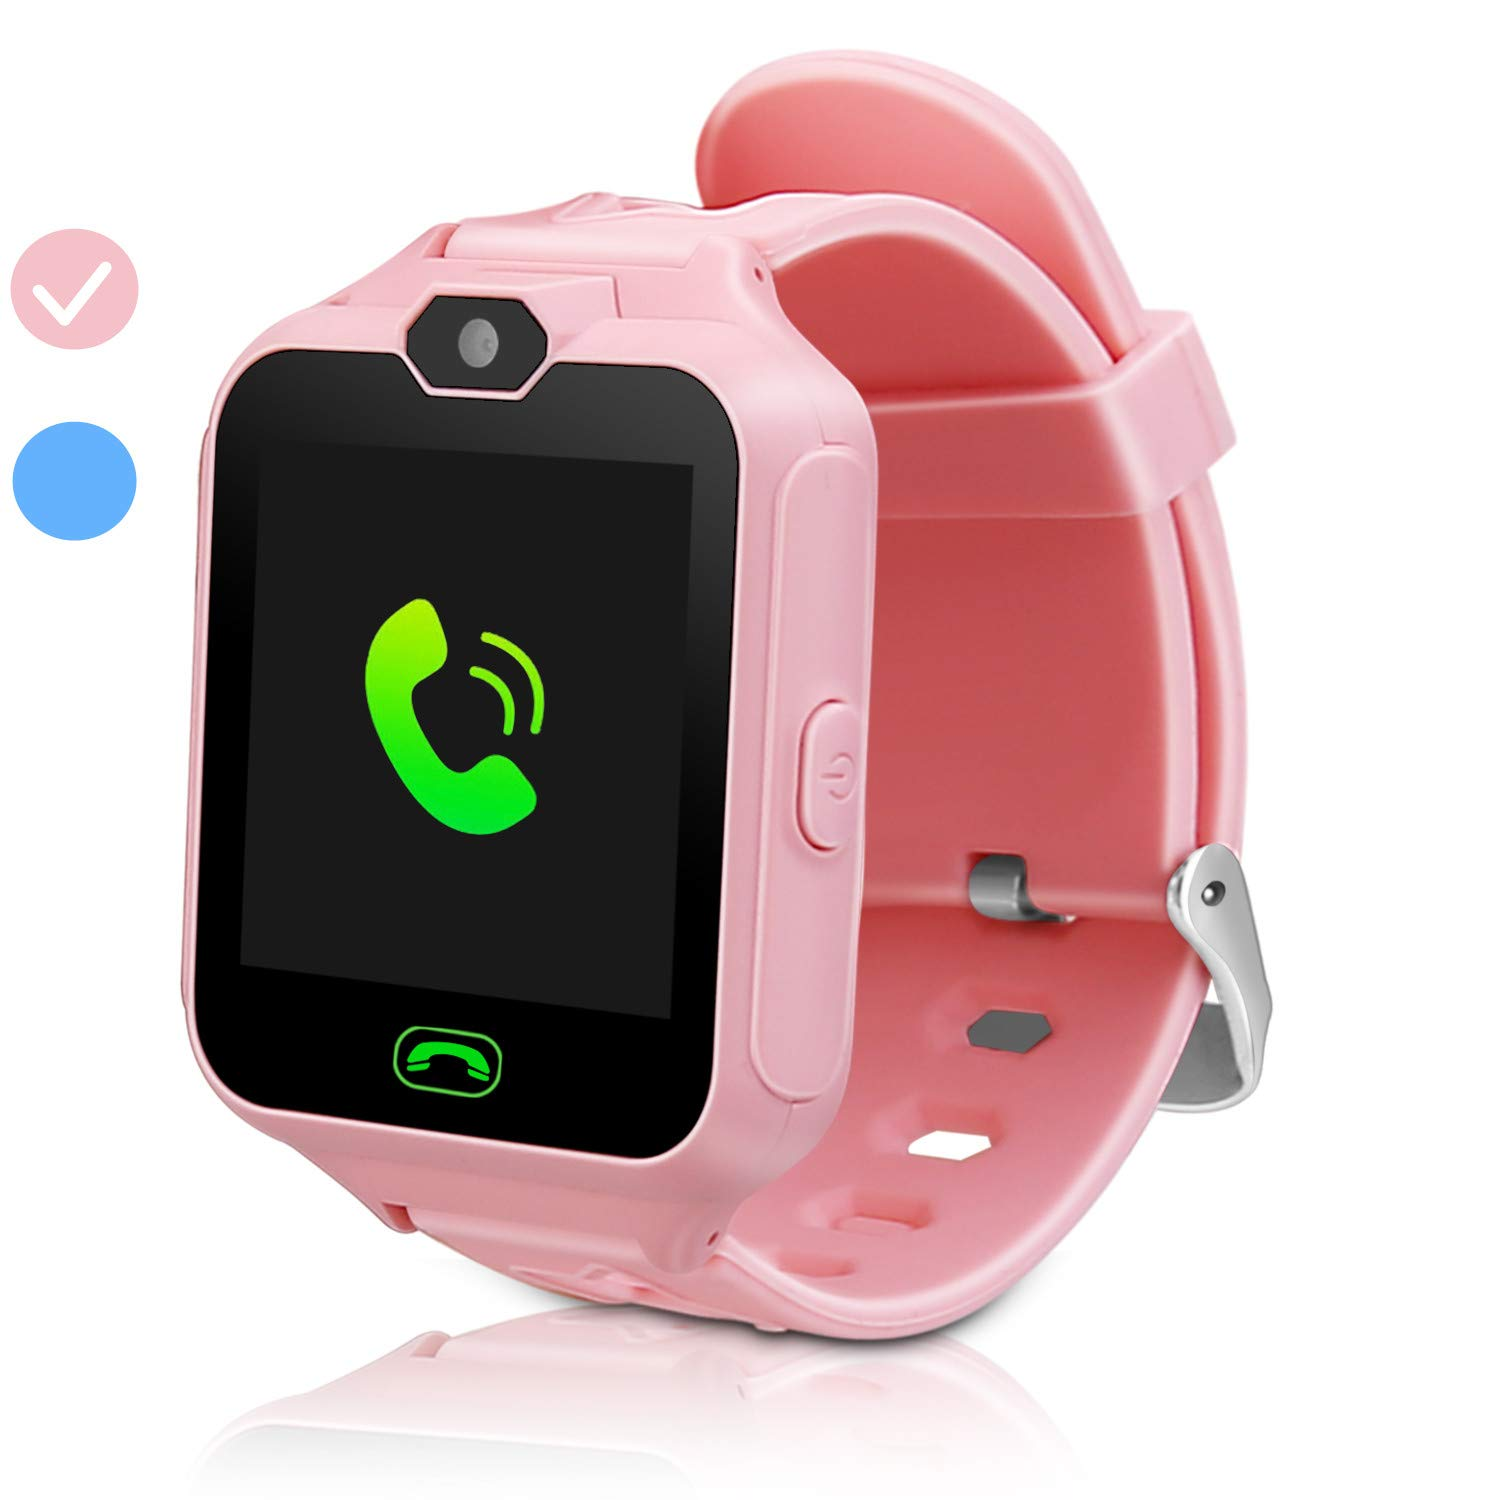 ZOPPRI Kids Smart Watches Phone Watch Girls Boys Birthday Gift for 3-15 Years Old, Pedometer with Phone and Alarm Clock, Games, and Photographic Watches Alarm Function Kids Toys Gift.